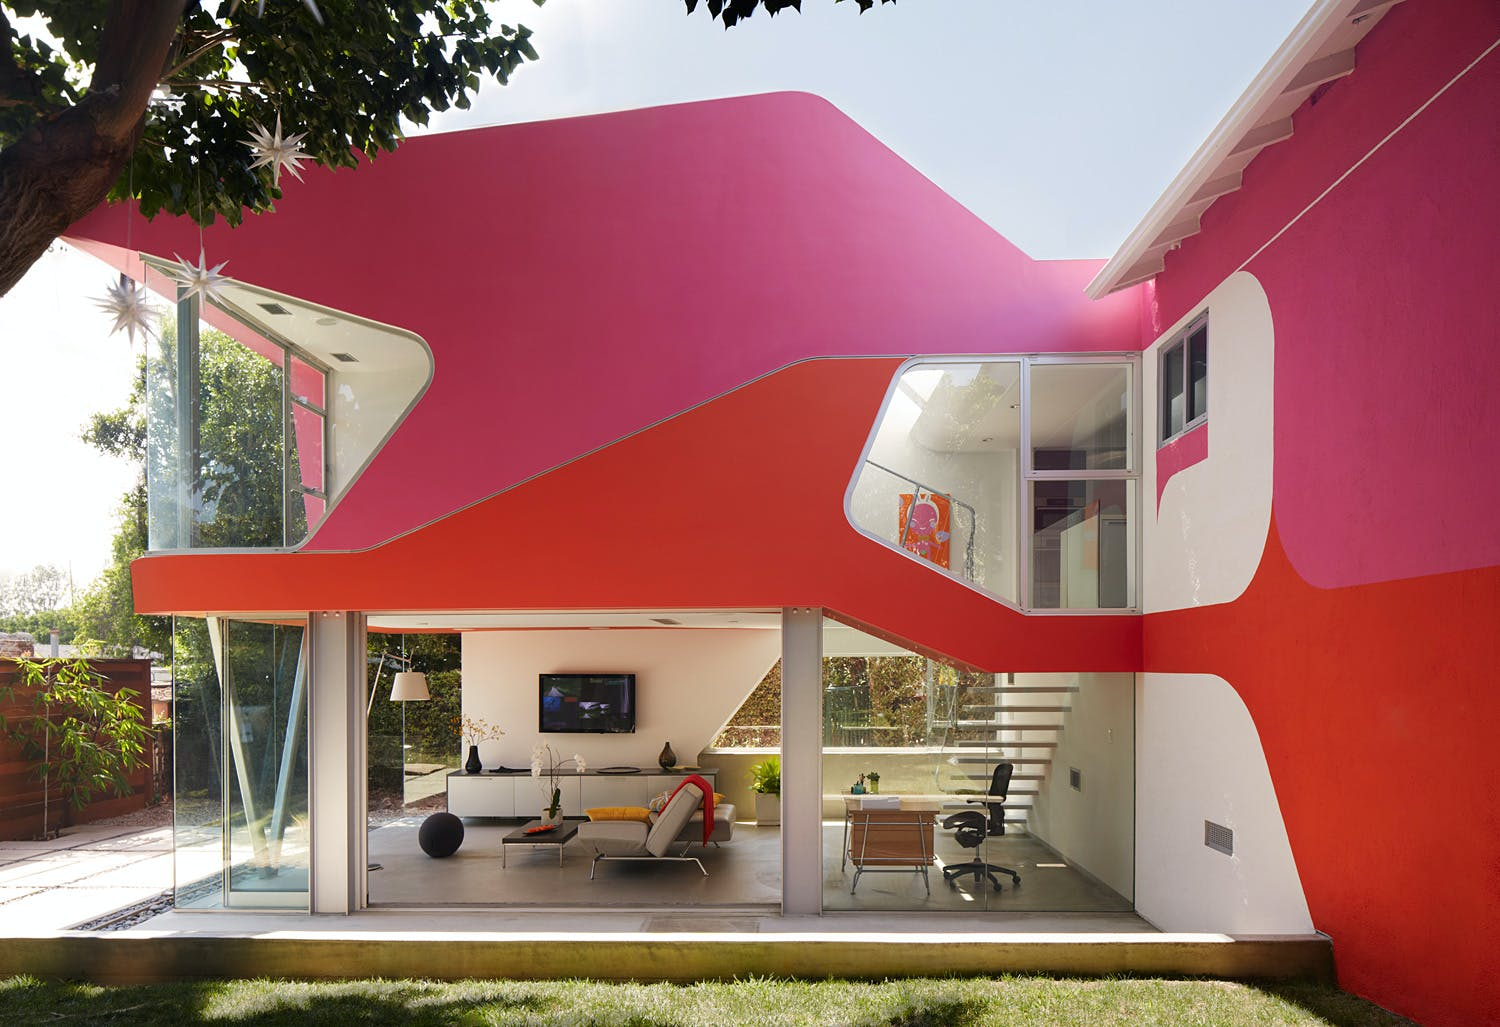 bid for art design experiences with famous architects in van